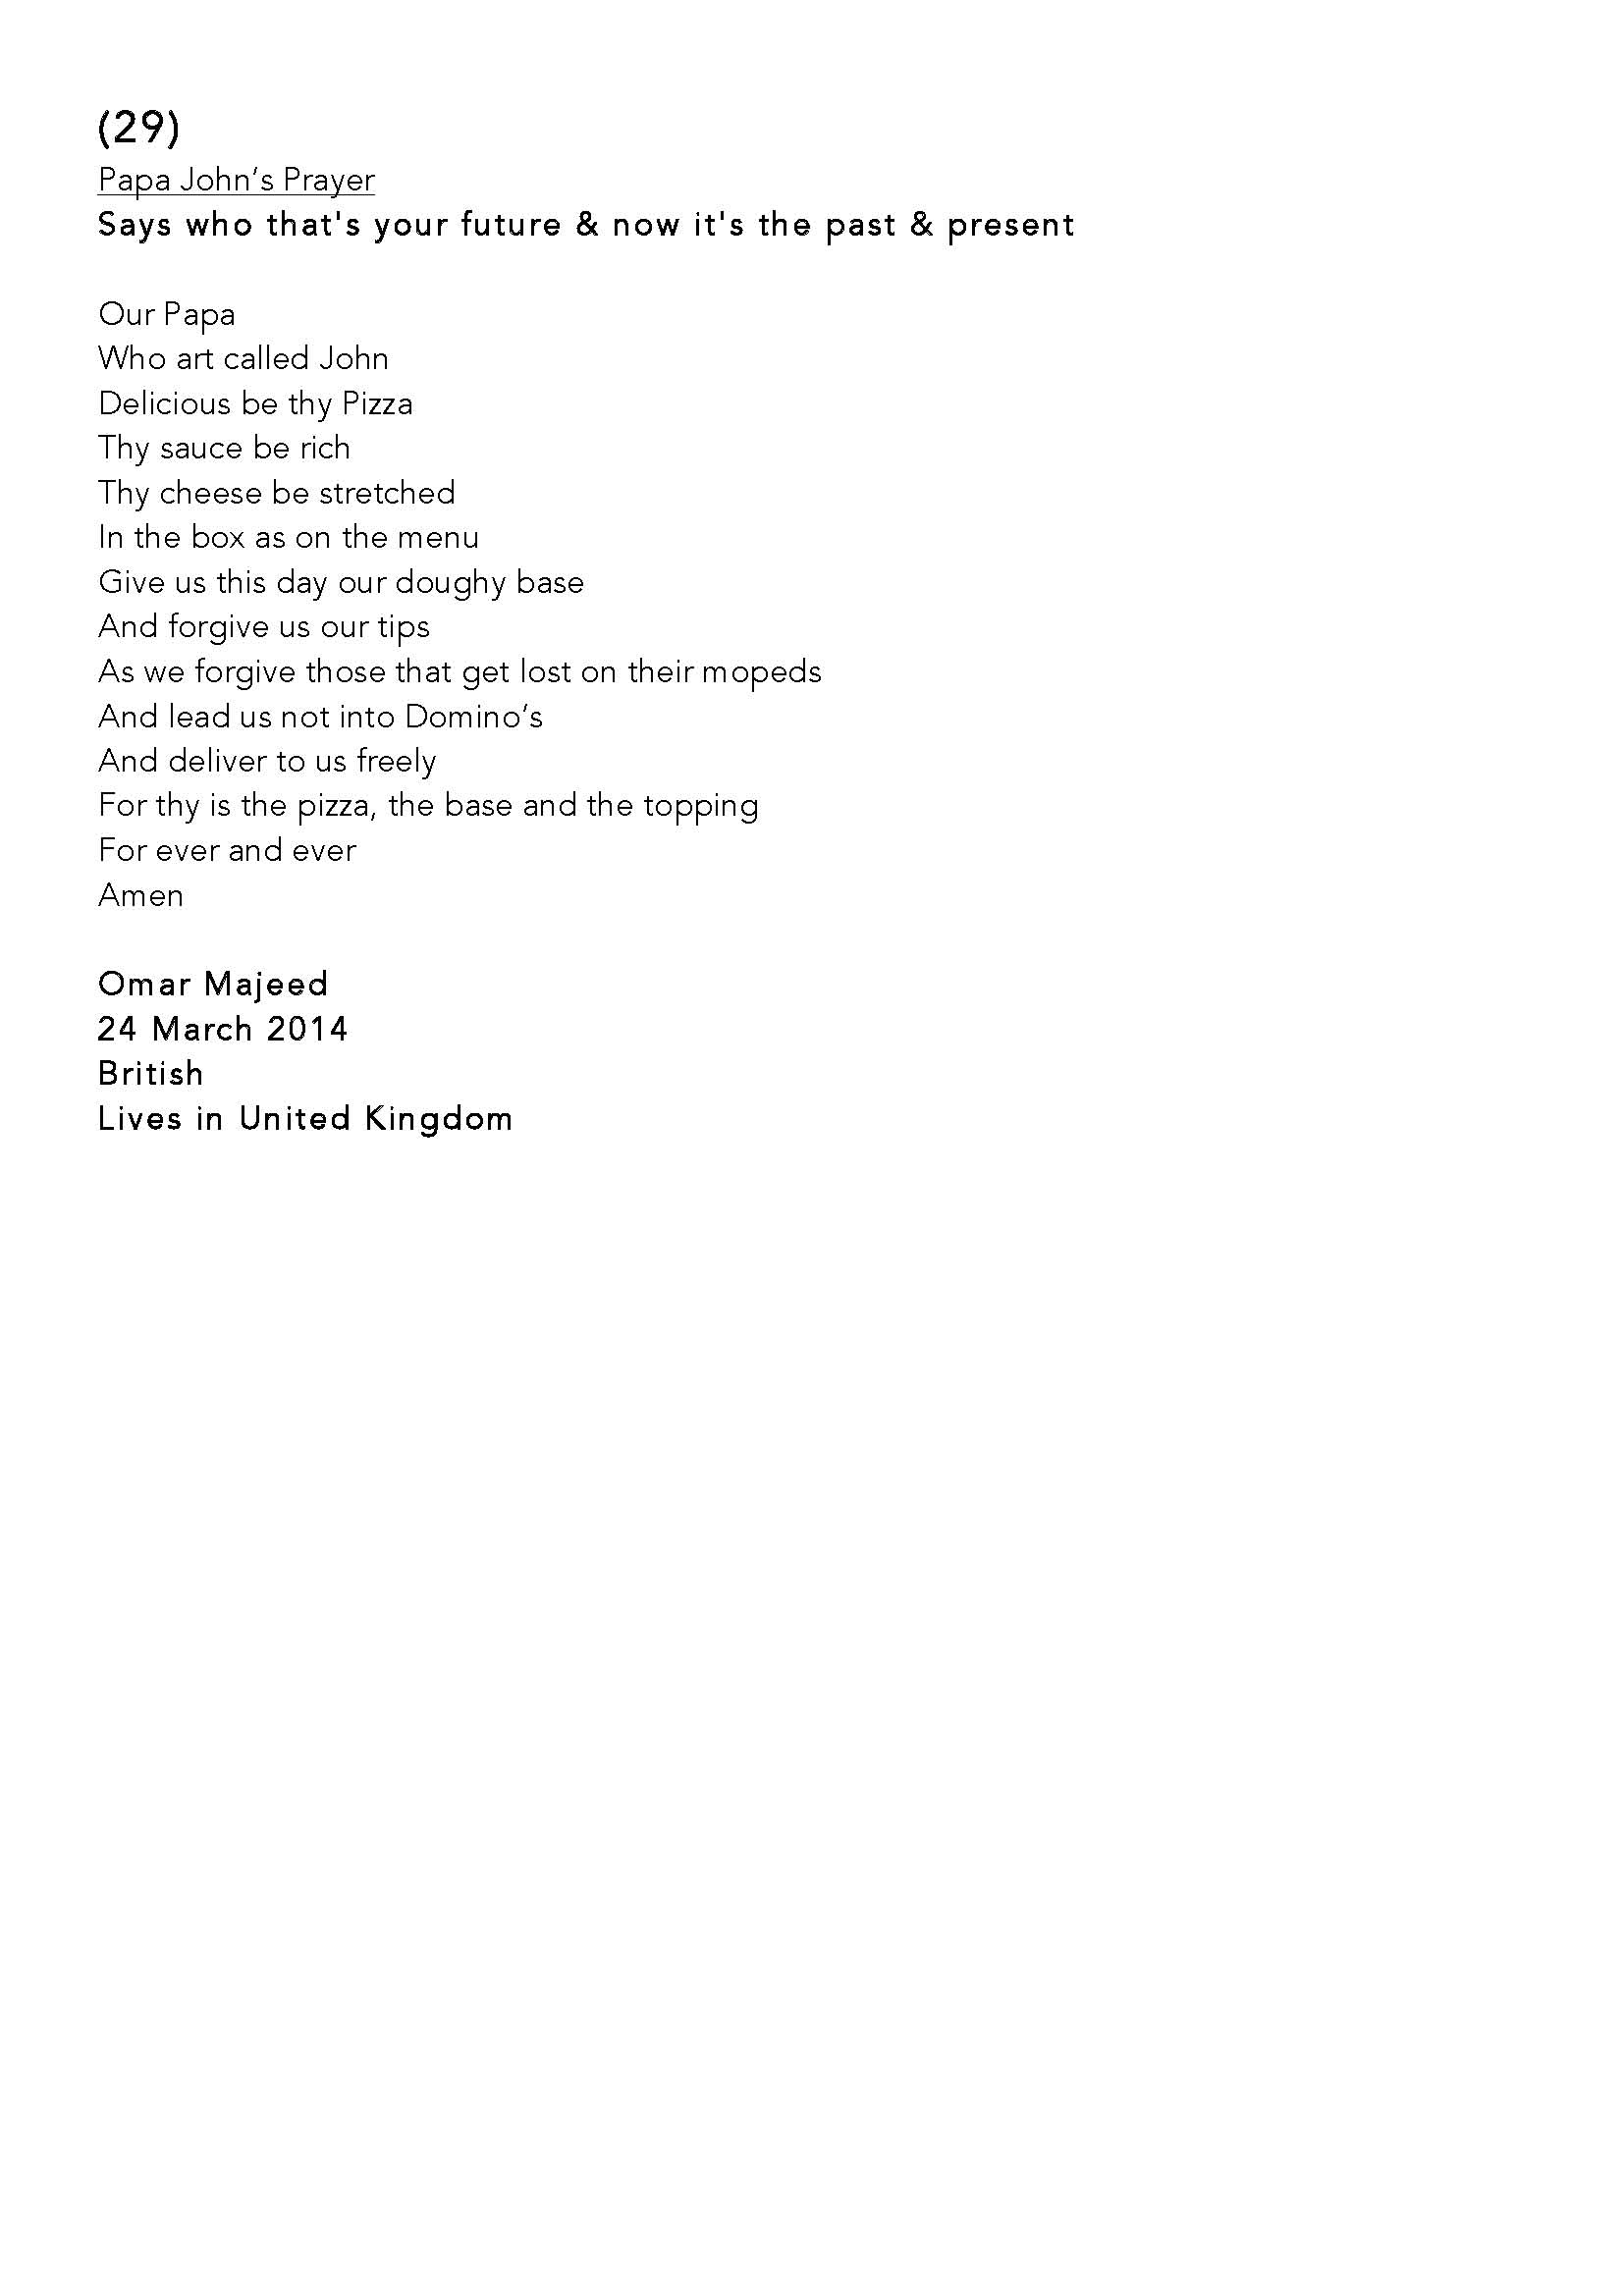 Poetry Collection - Everyone can Poetry_March 2014_Page_29.jpg